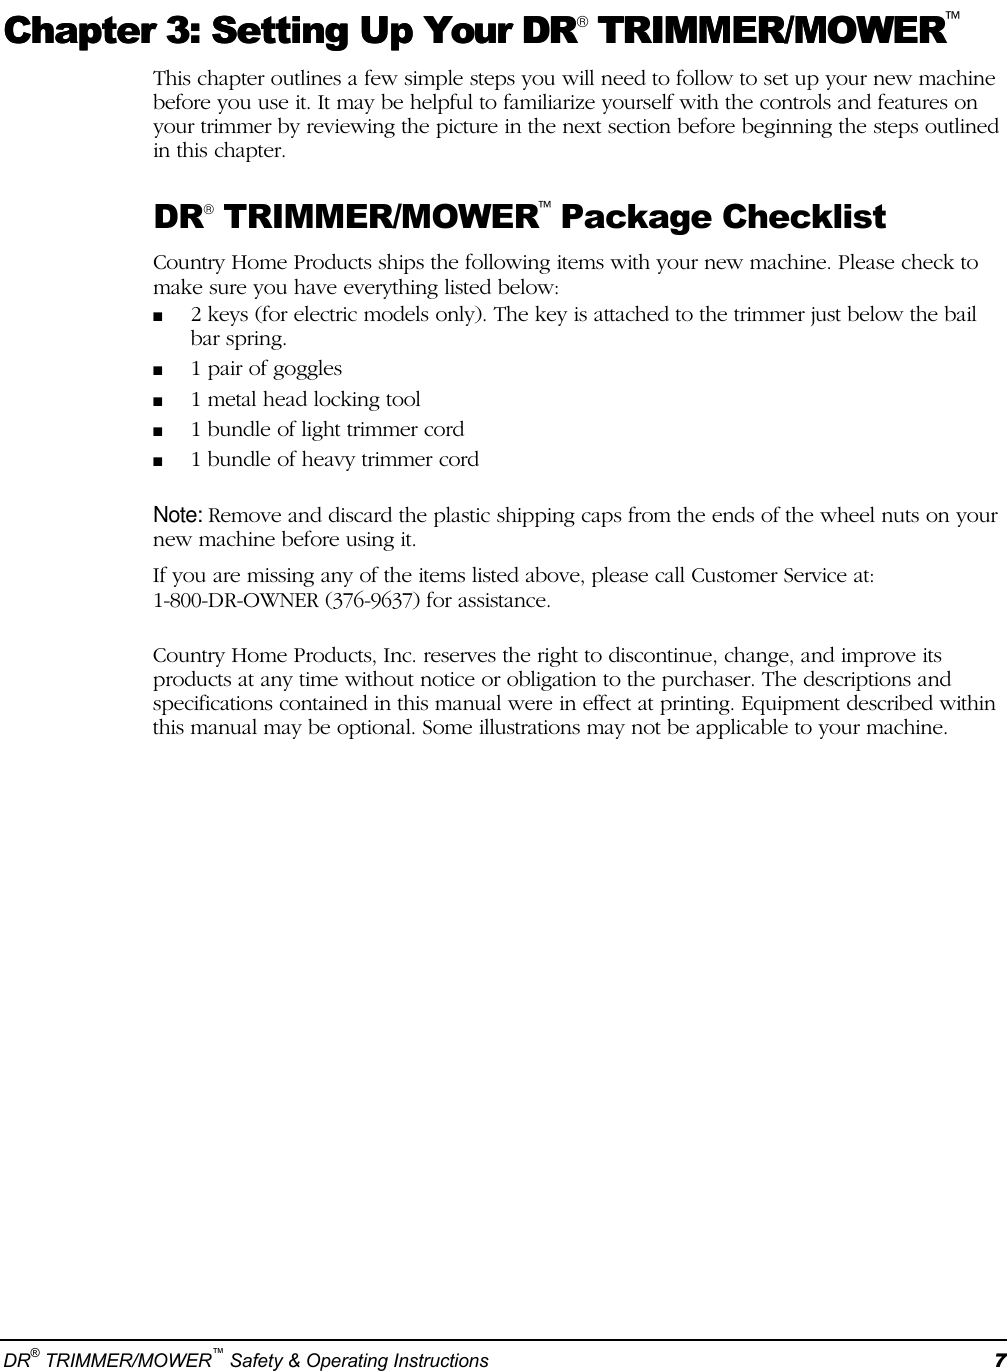 Country Home Products Mens Trimmer Users Manual DR Mower